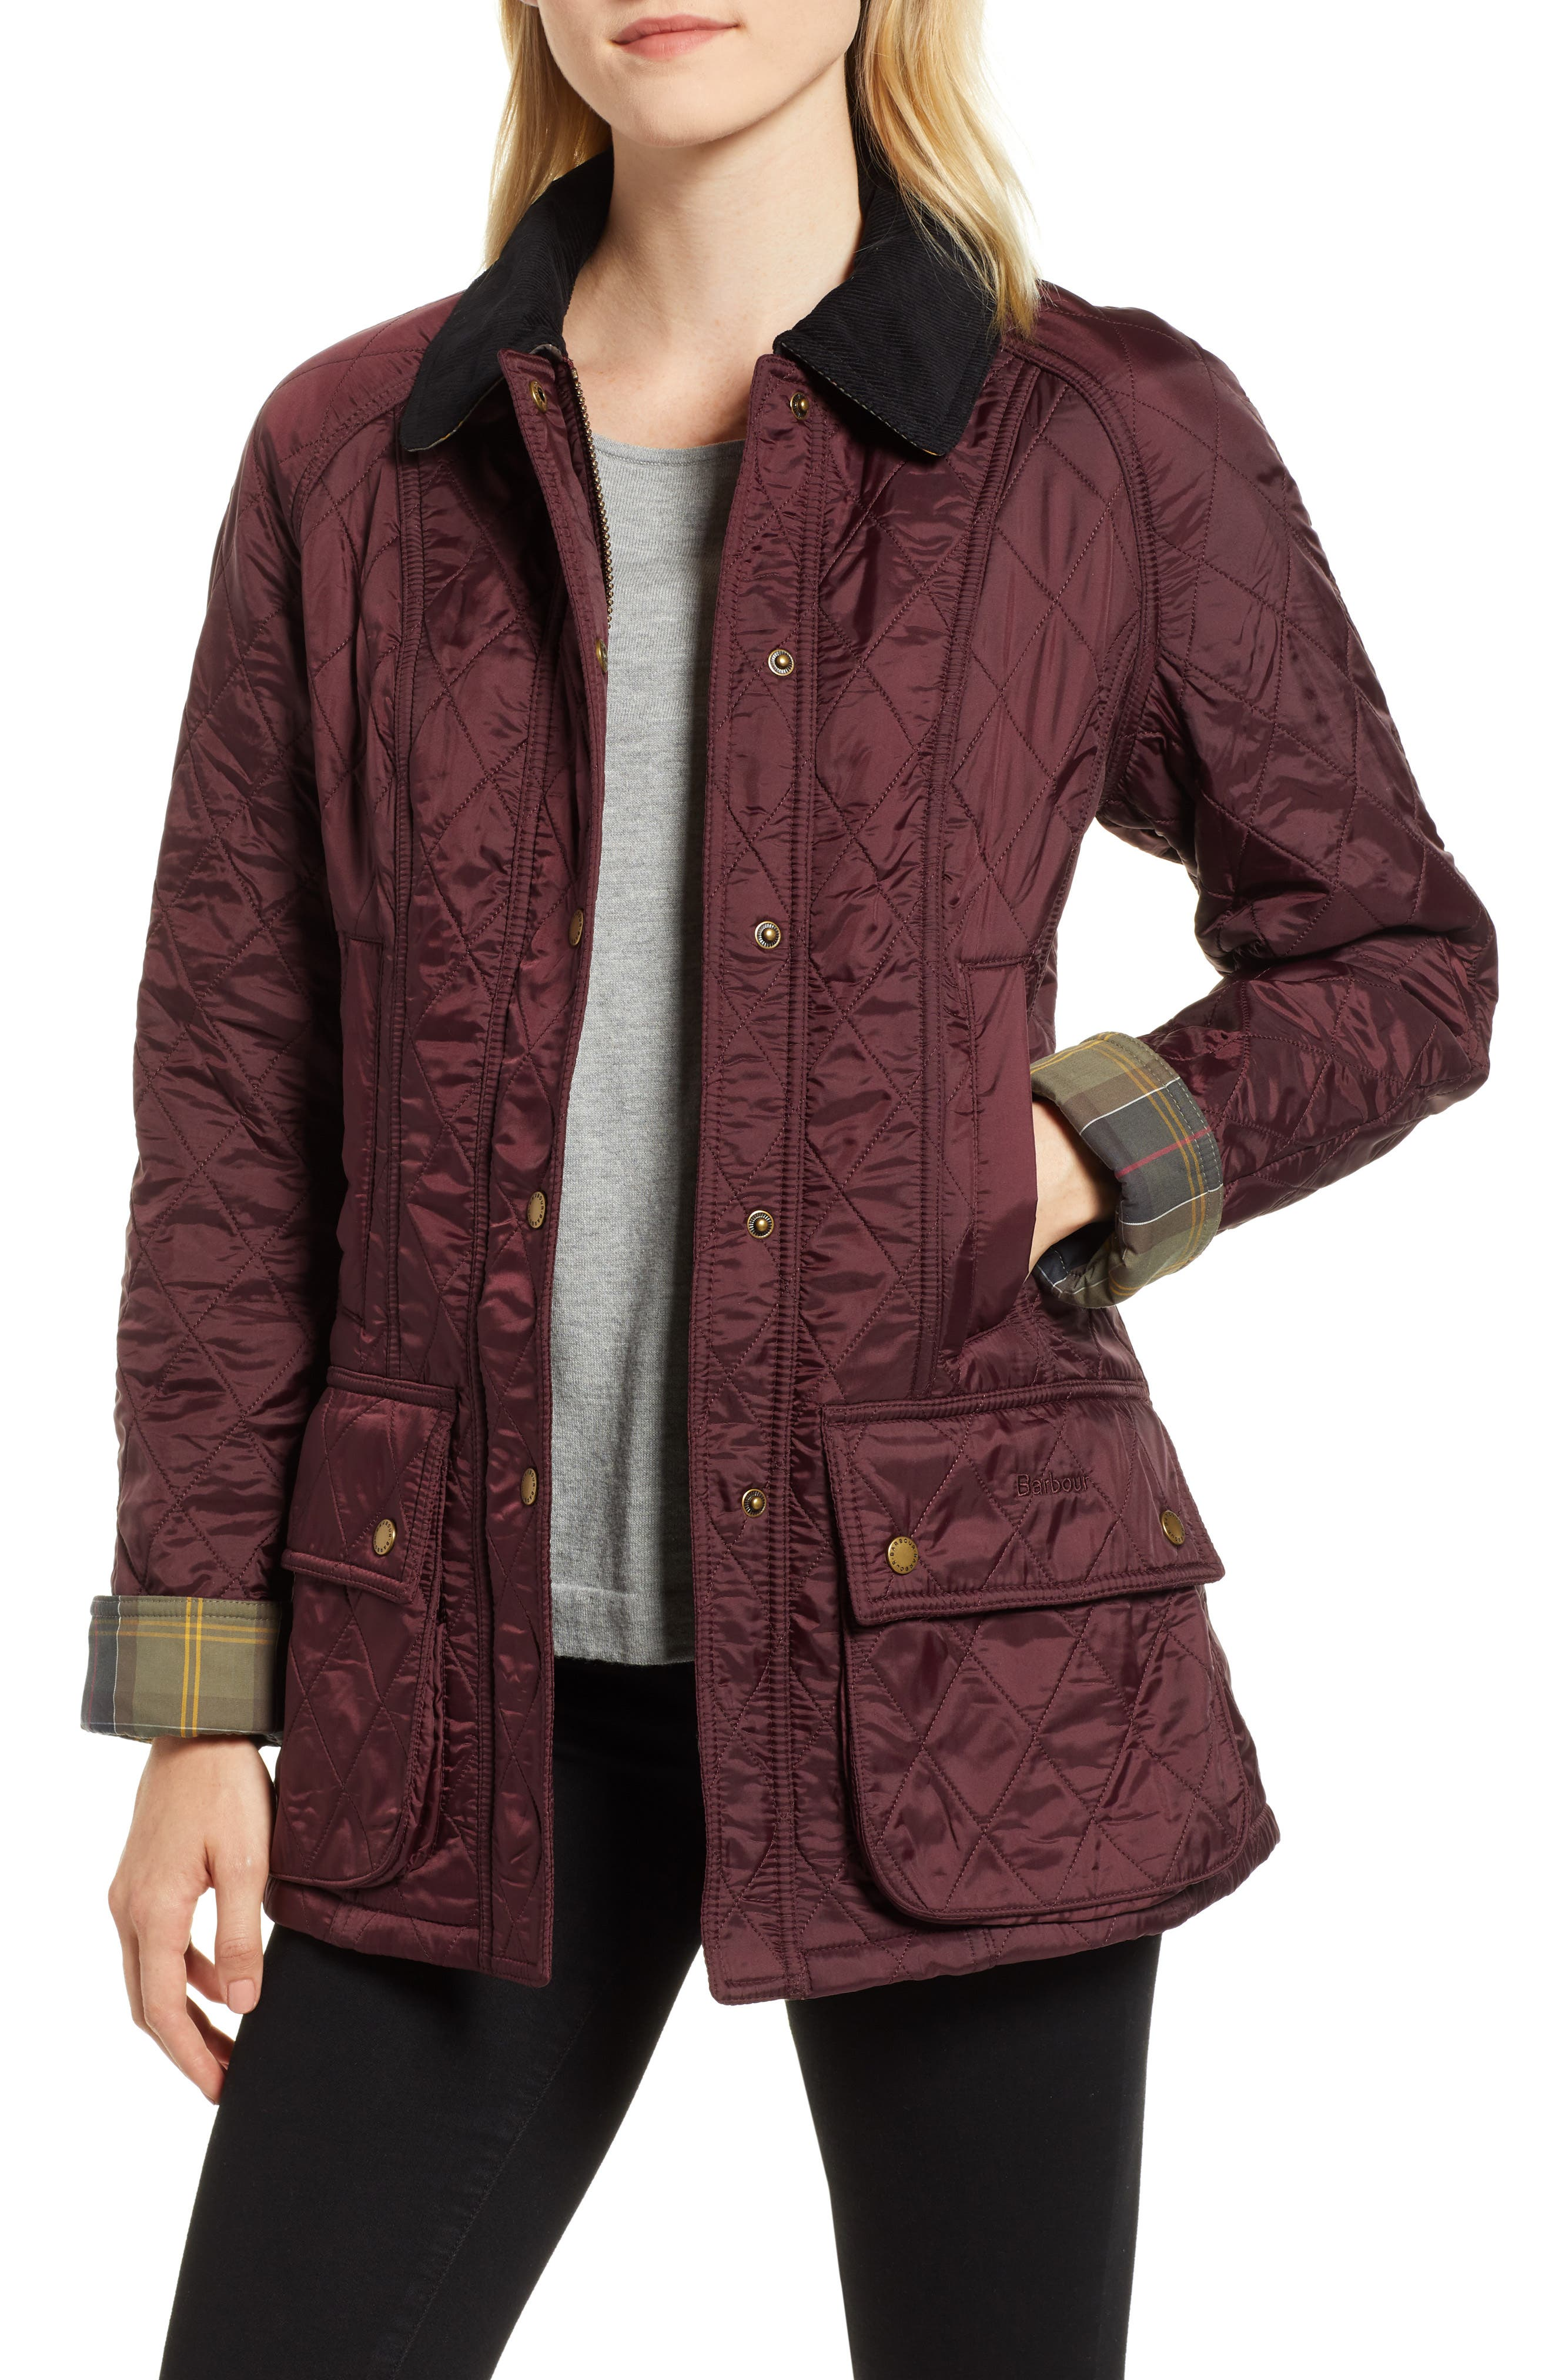 BARBOUR 'Beadnell' Quilted Jacket, Main, color, 930